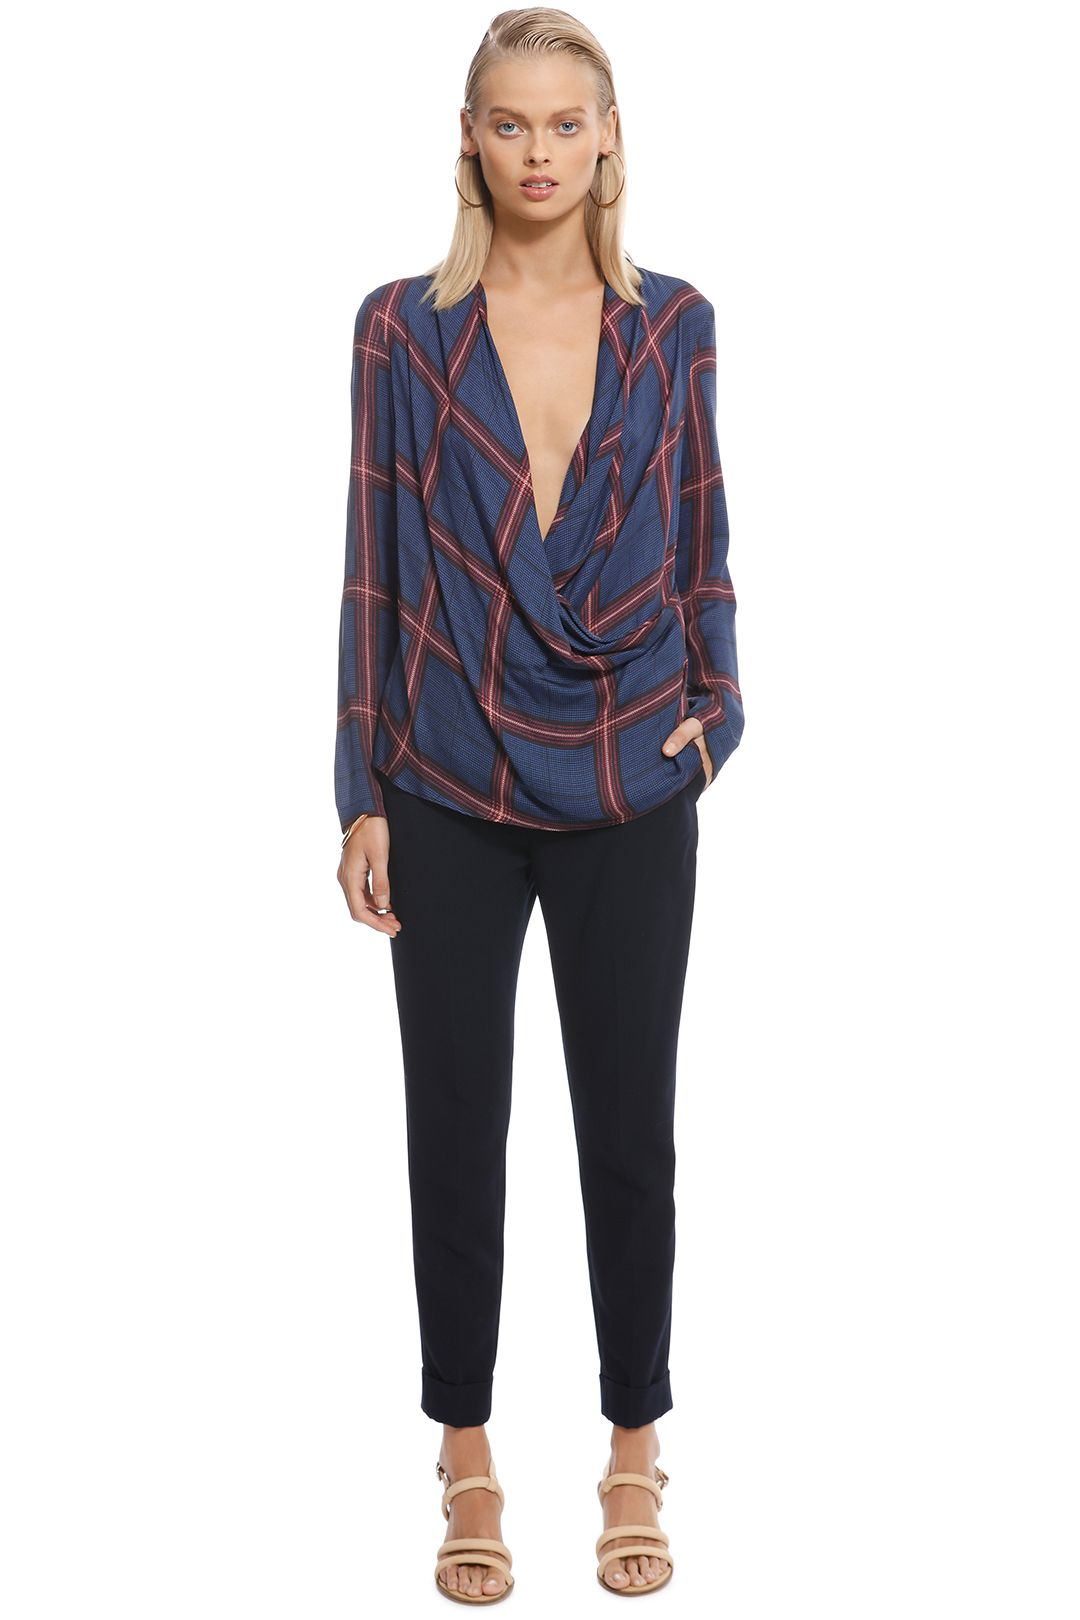 Camilla and Marc - Alaine Top - Navy - Front